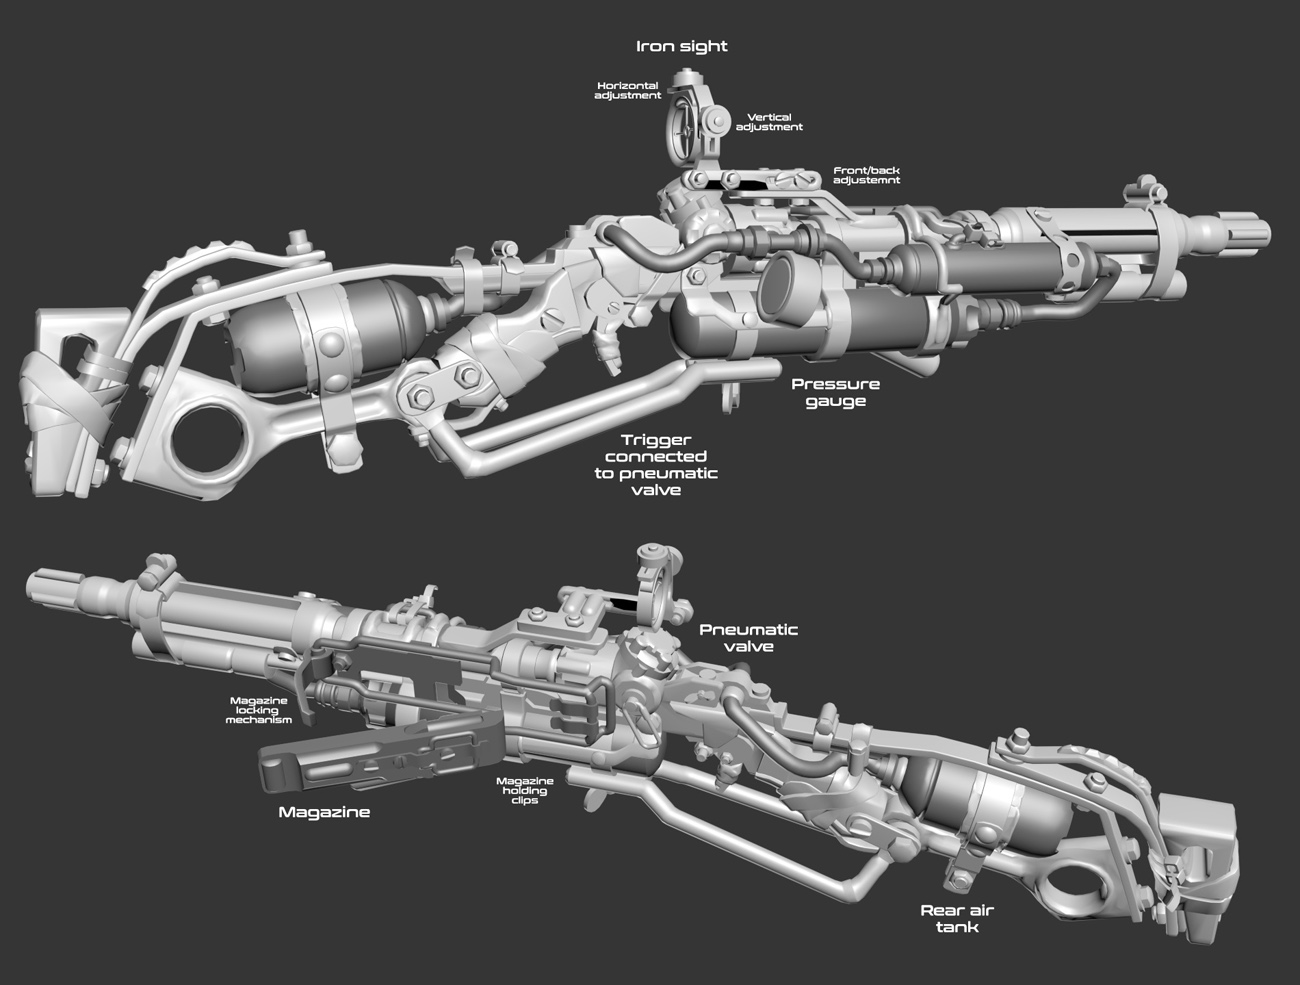 Design of some core parts